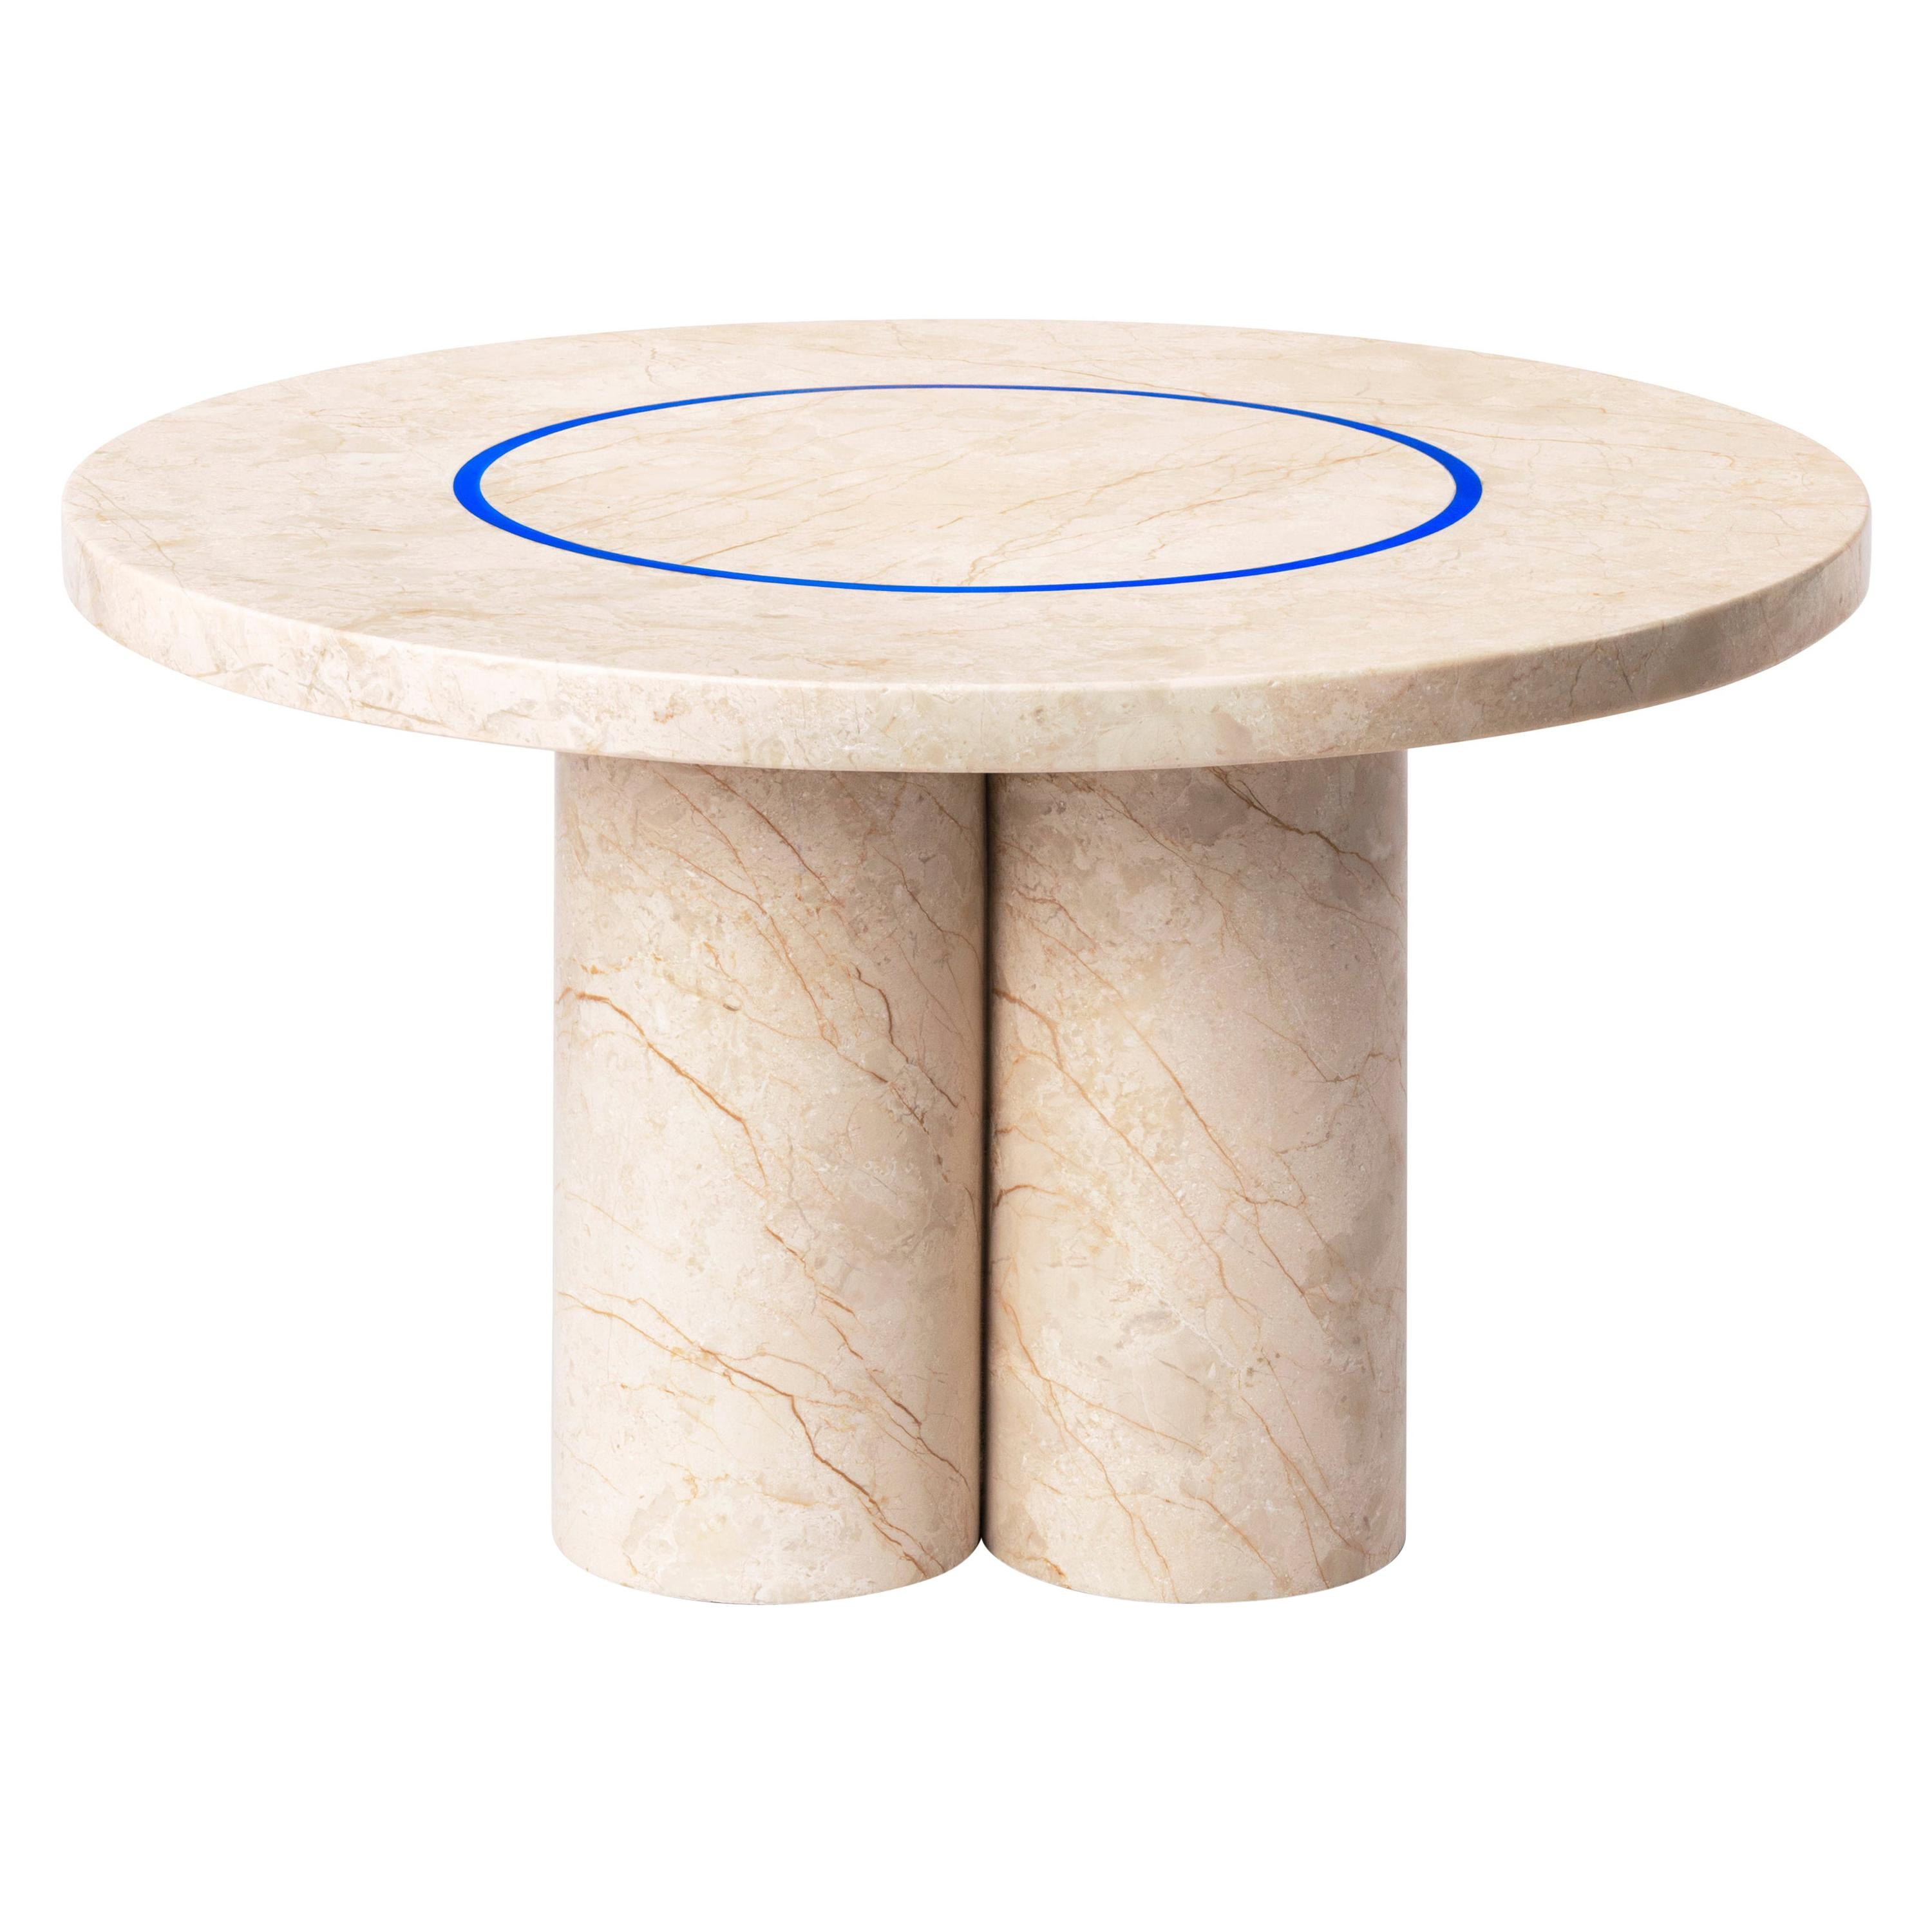 Menes Gold Marble Coffee Table from Dislocation by Studio Buzao